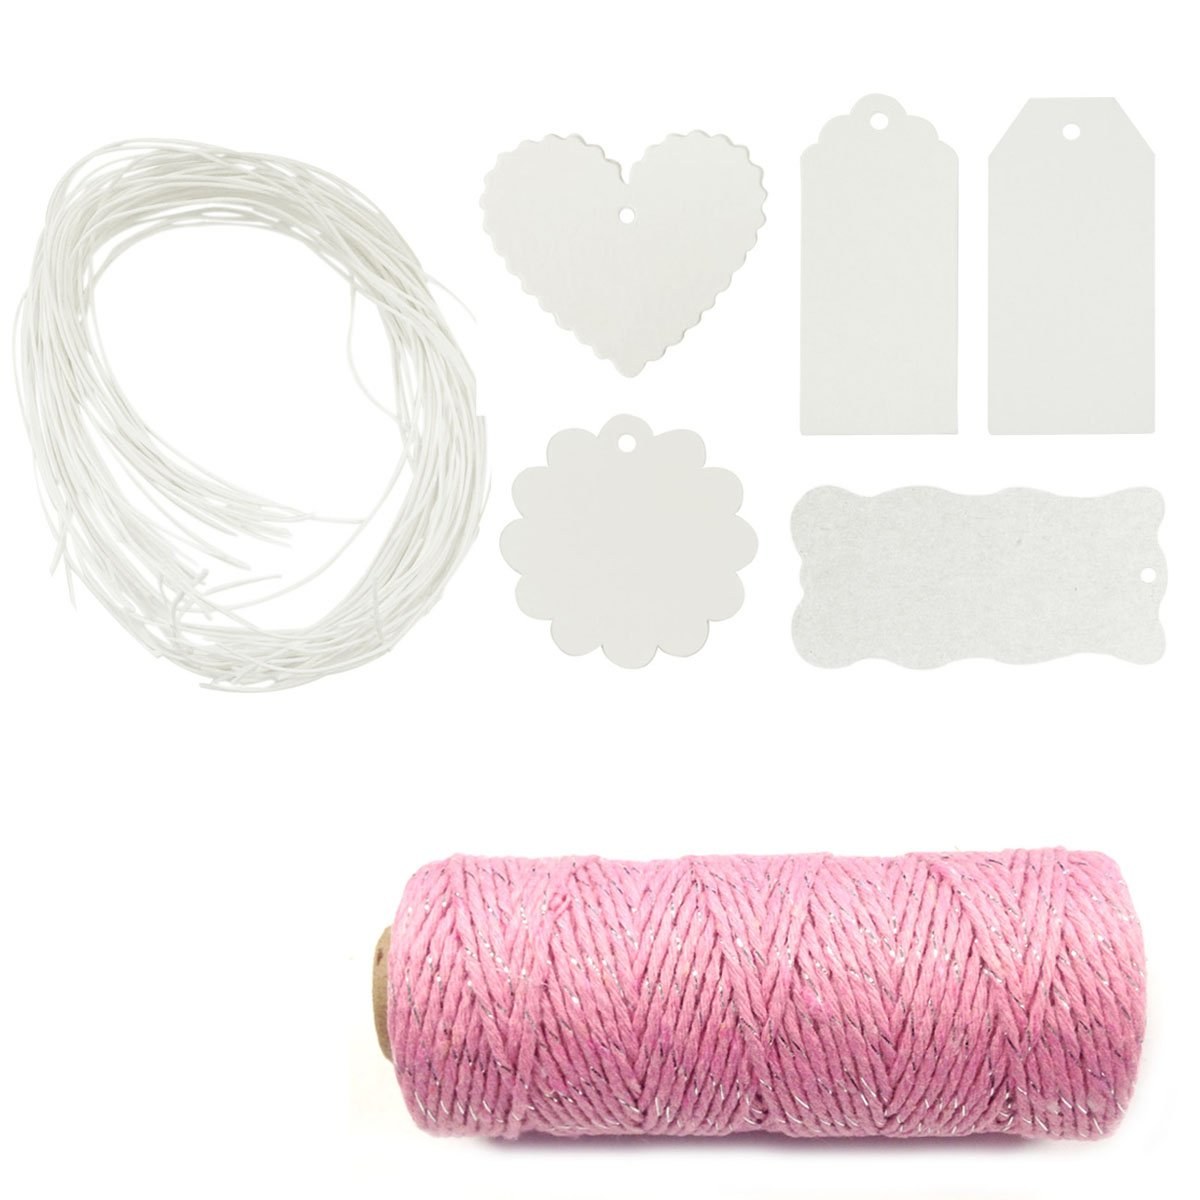 Wrapables 100-Count White Gift Tags with Free Cut String for Gifts Crafts and Price Tags Plus Cotton Baker's Twine, 12 Ply/110-Yard, Pink/Metallic Silver